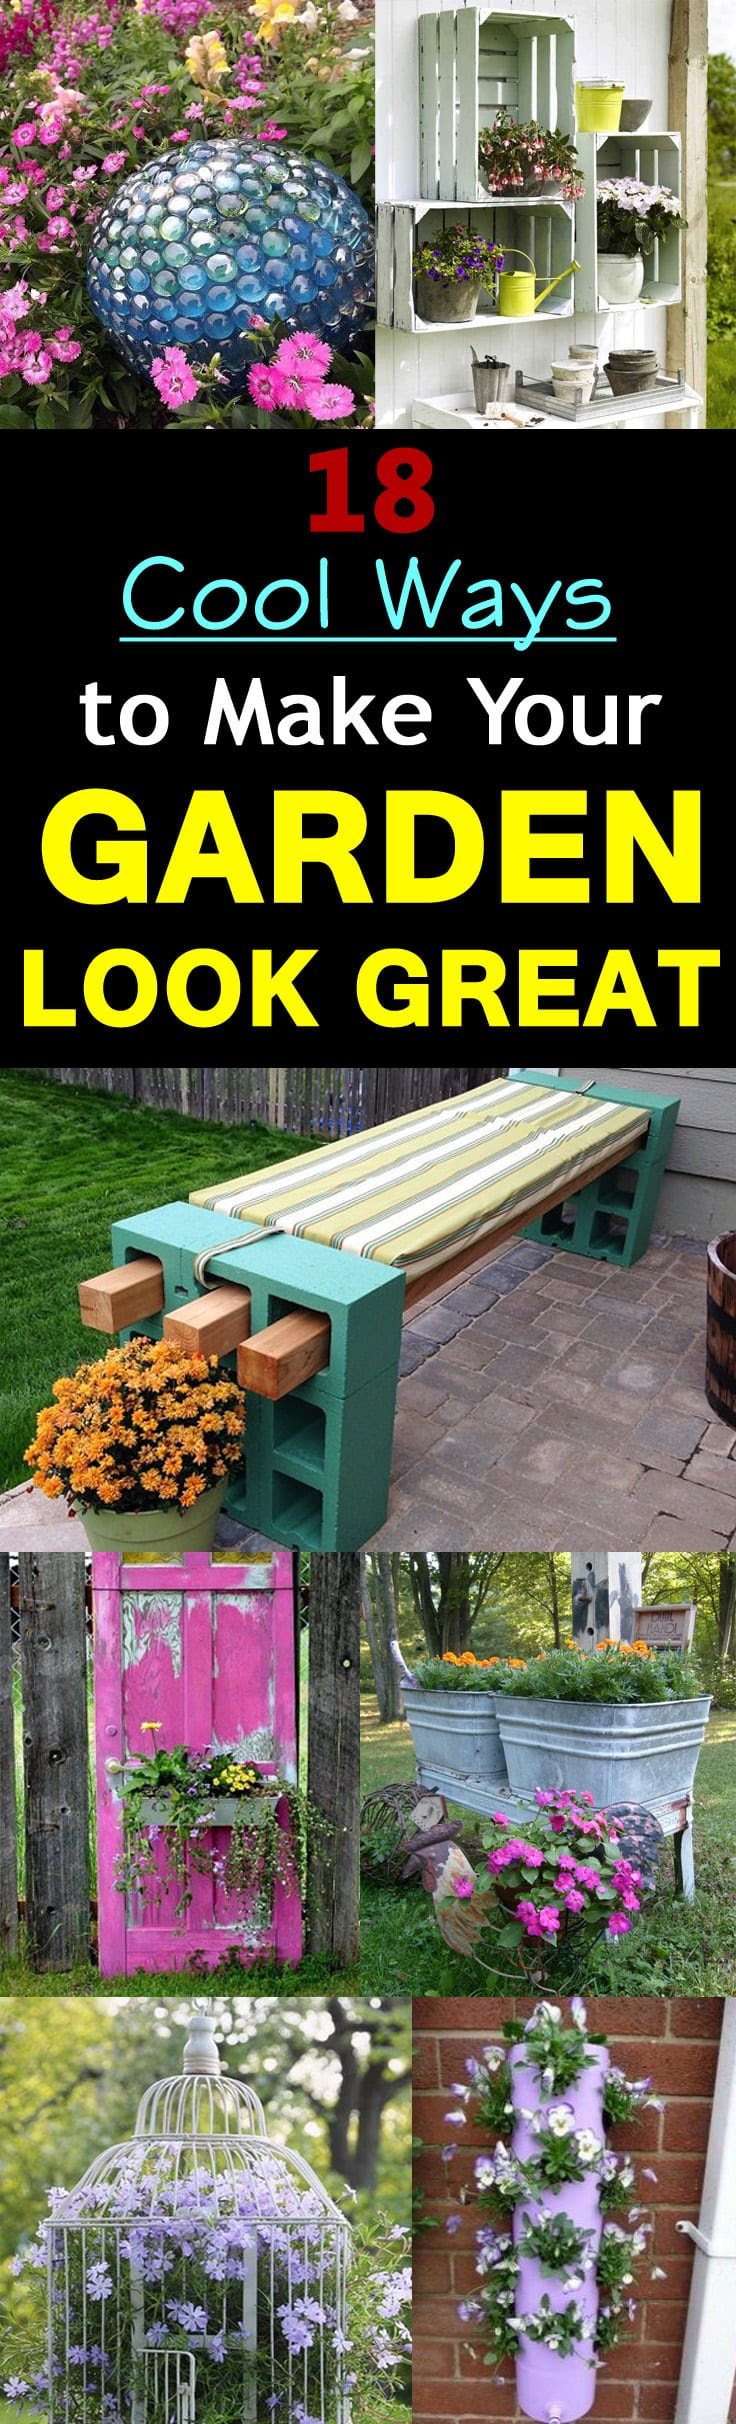 18 Cool DIY Ideas To Make Your Garden Look Great   Balcony ...